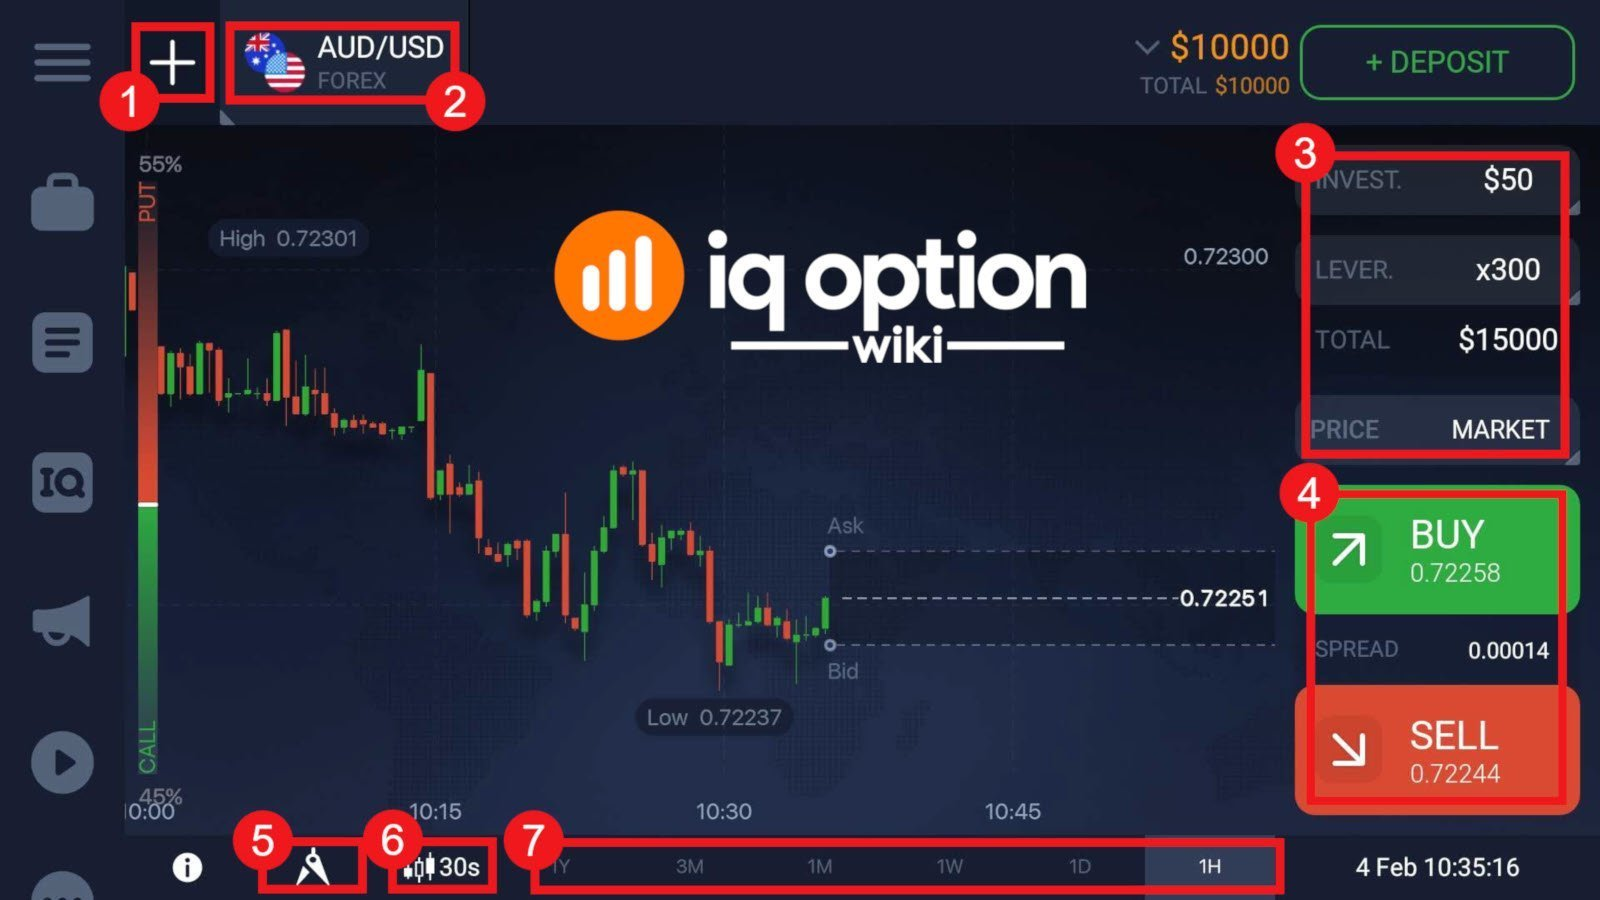 user interface of iq option mobile app